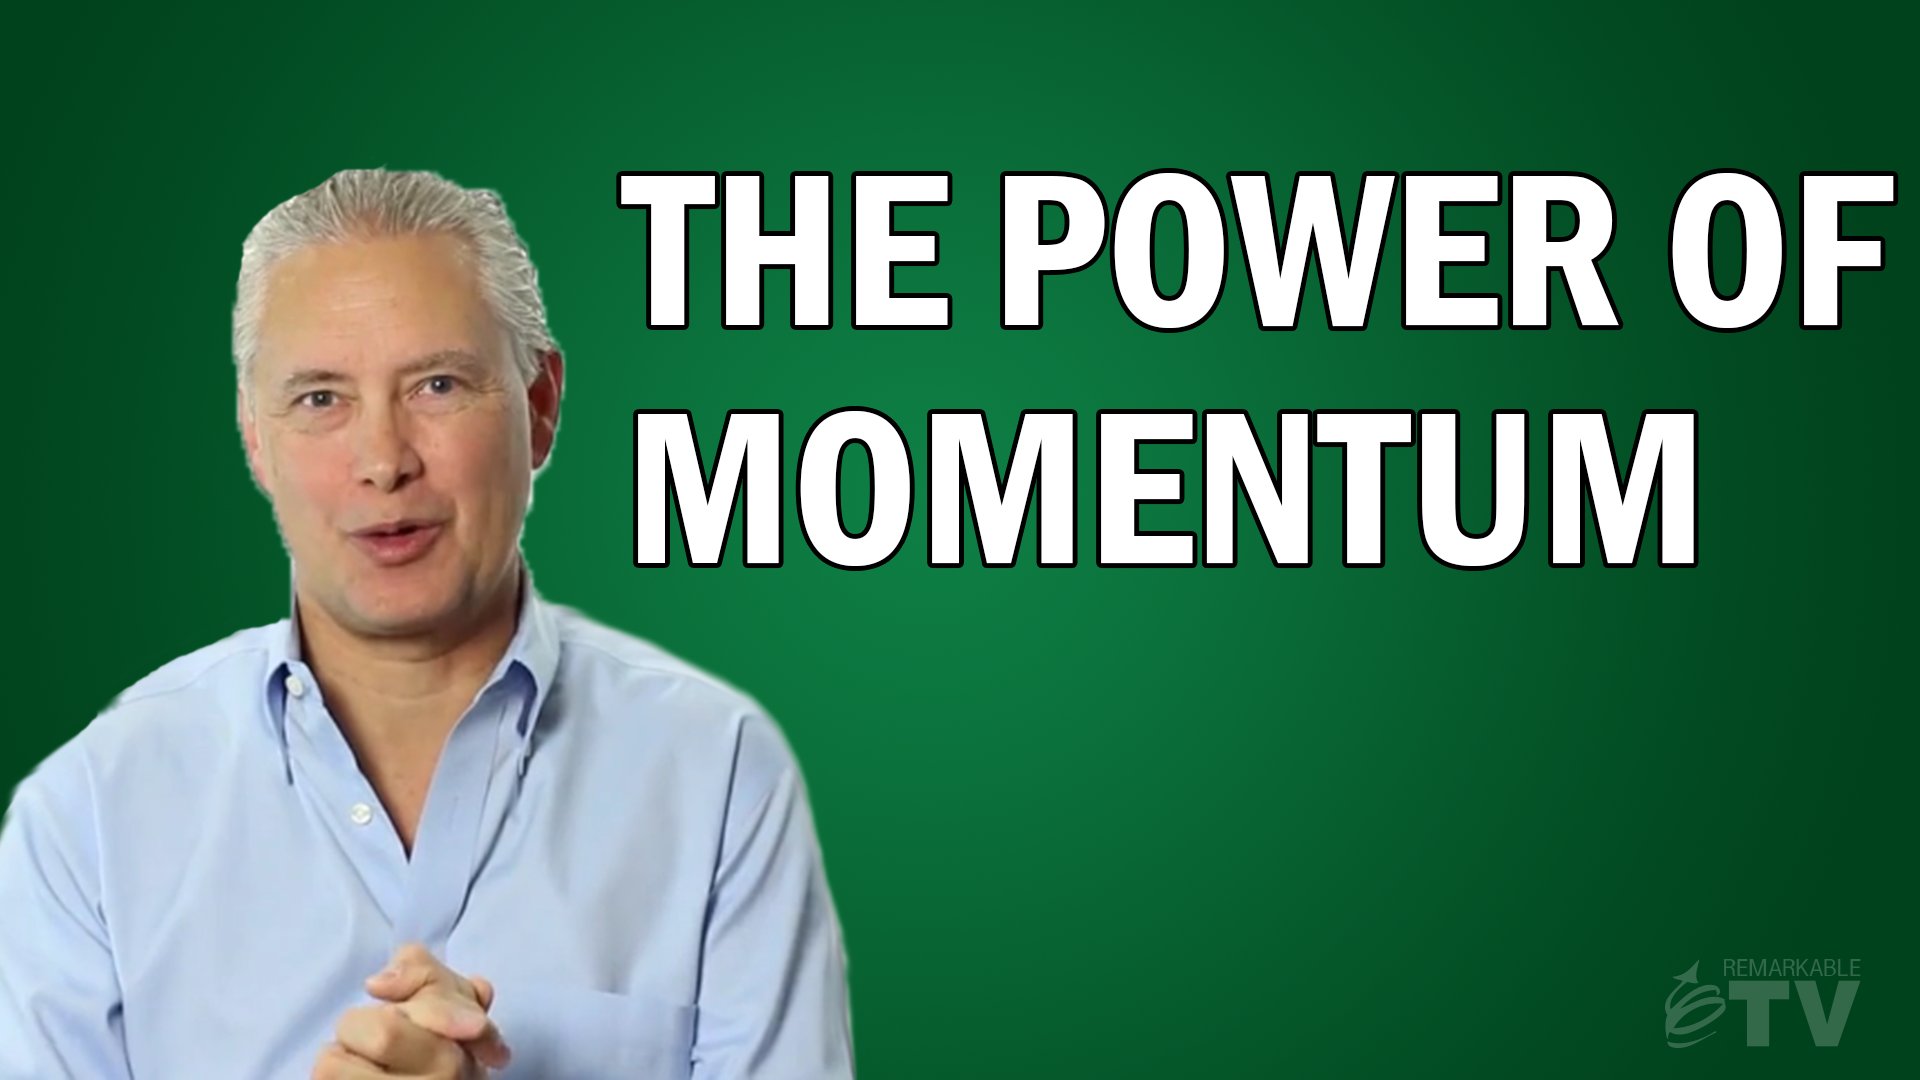 The Power of Momentum - Remarkable TV with Kevin Eikenberry